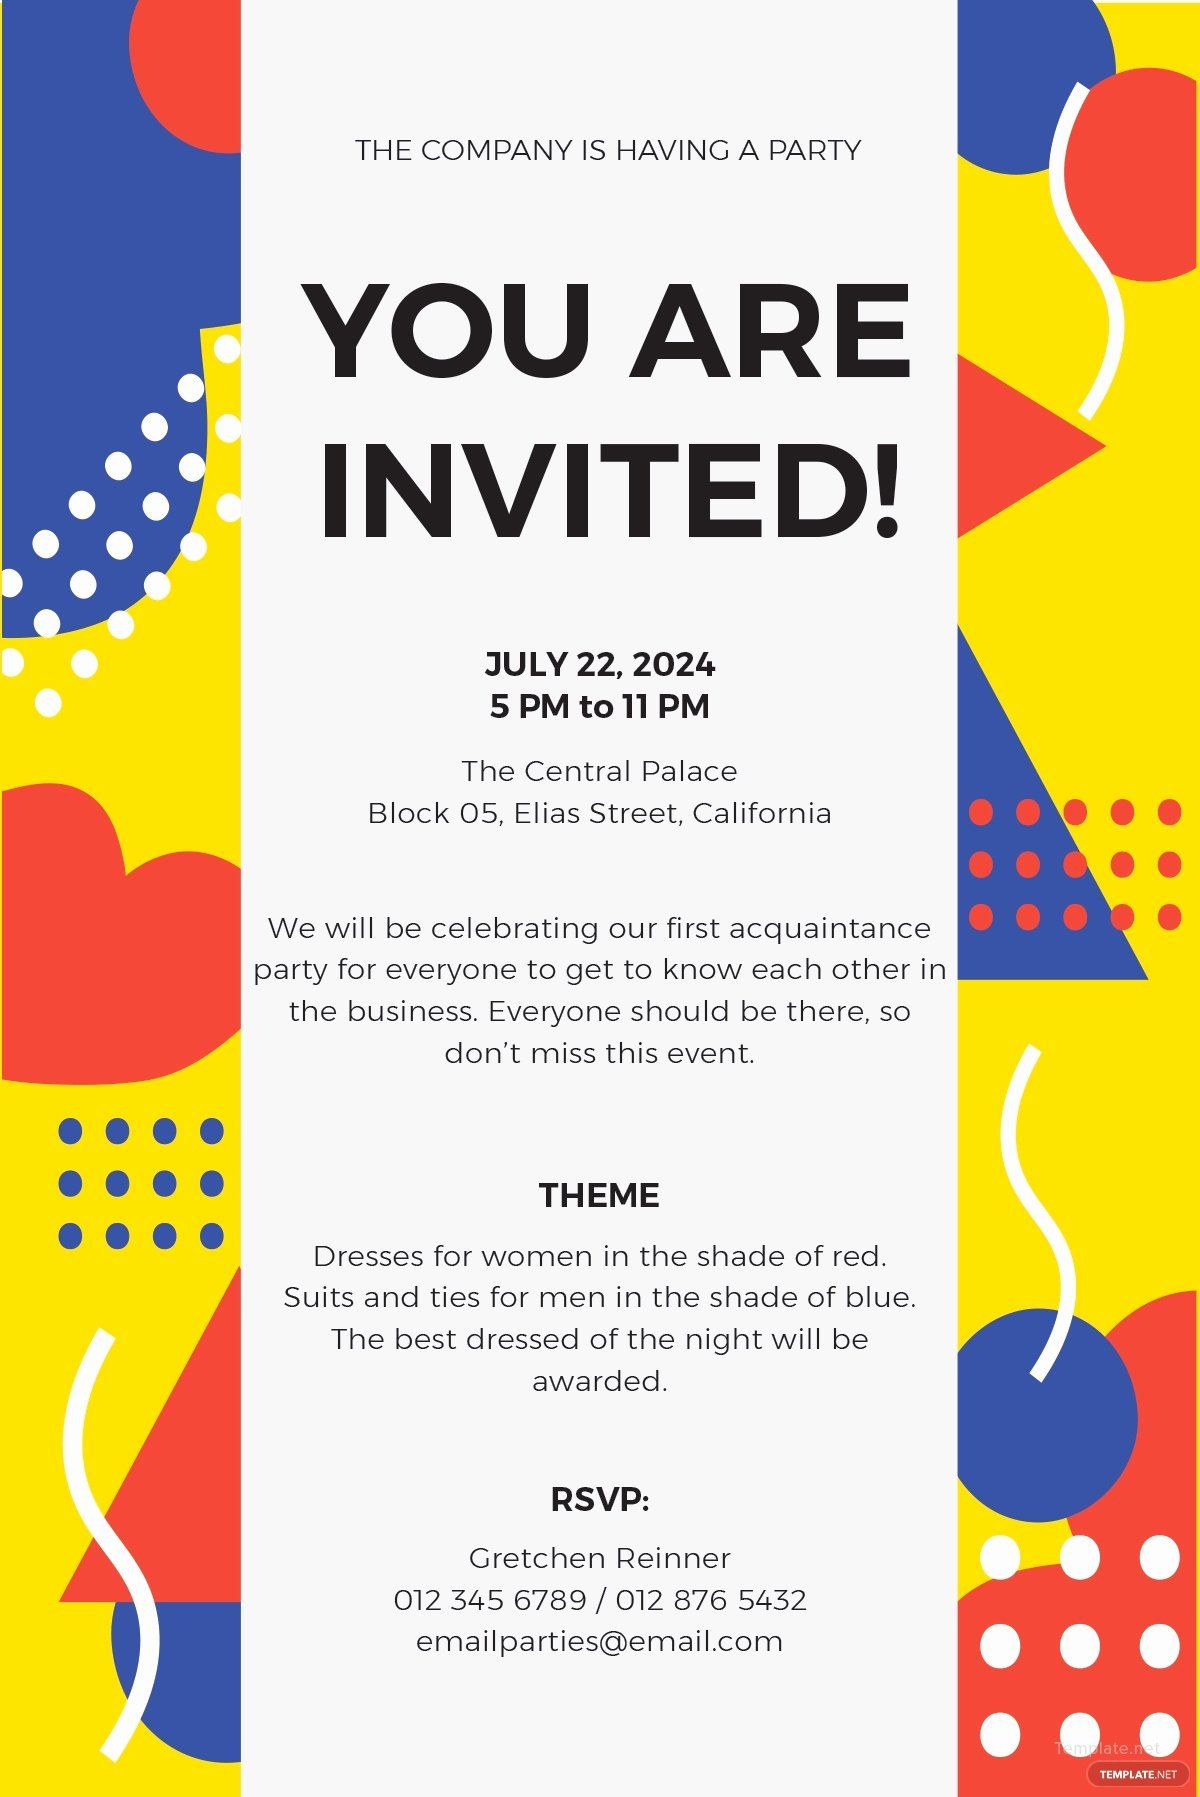 Event Invitation Template Free Best Of Free Email Party Invitation